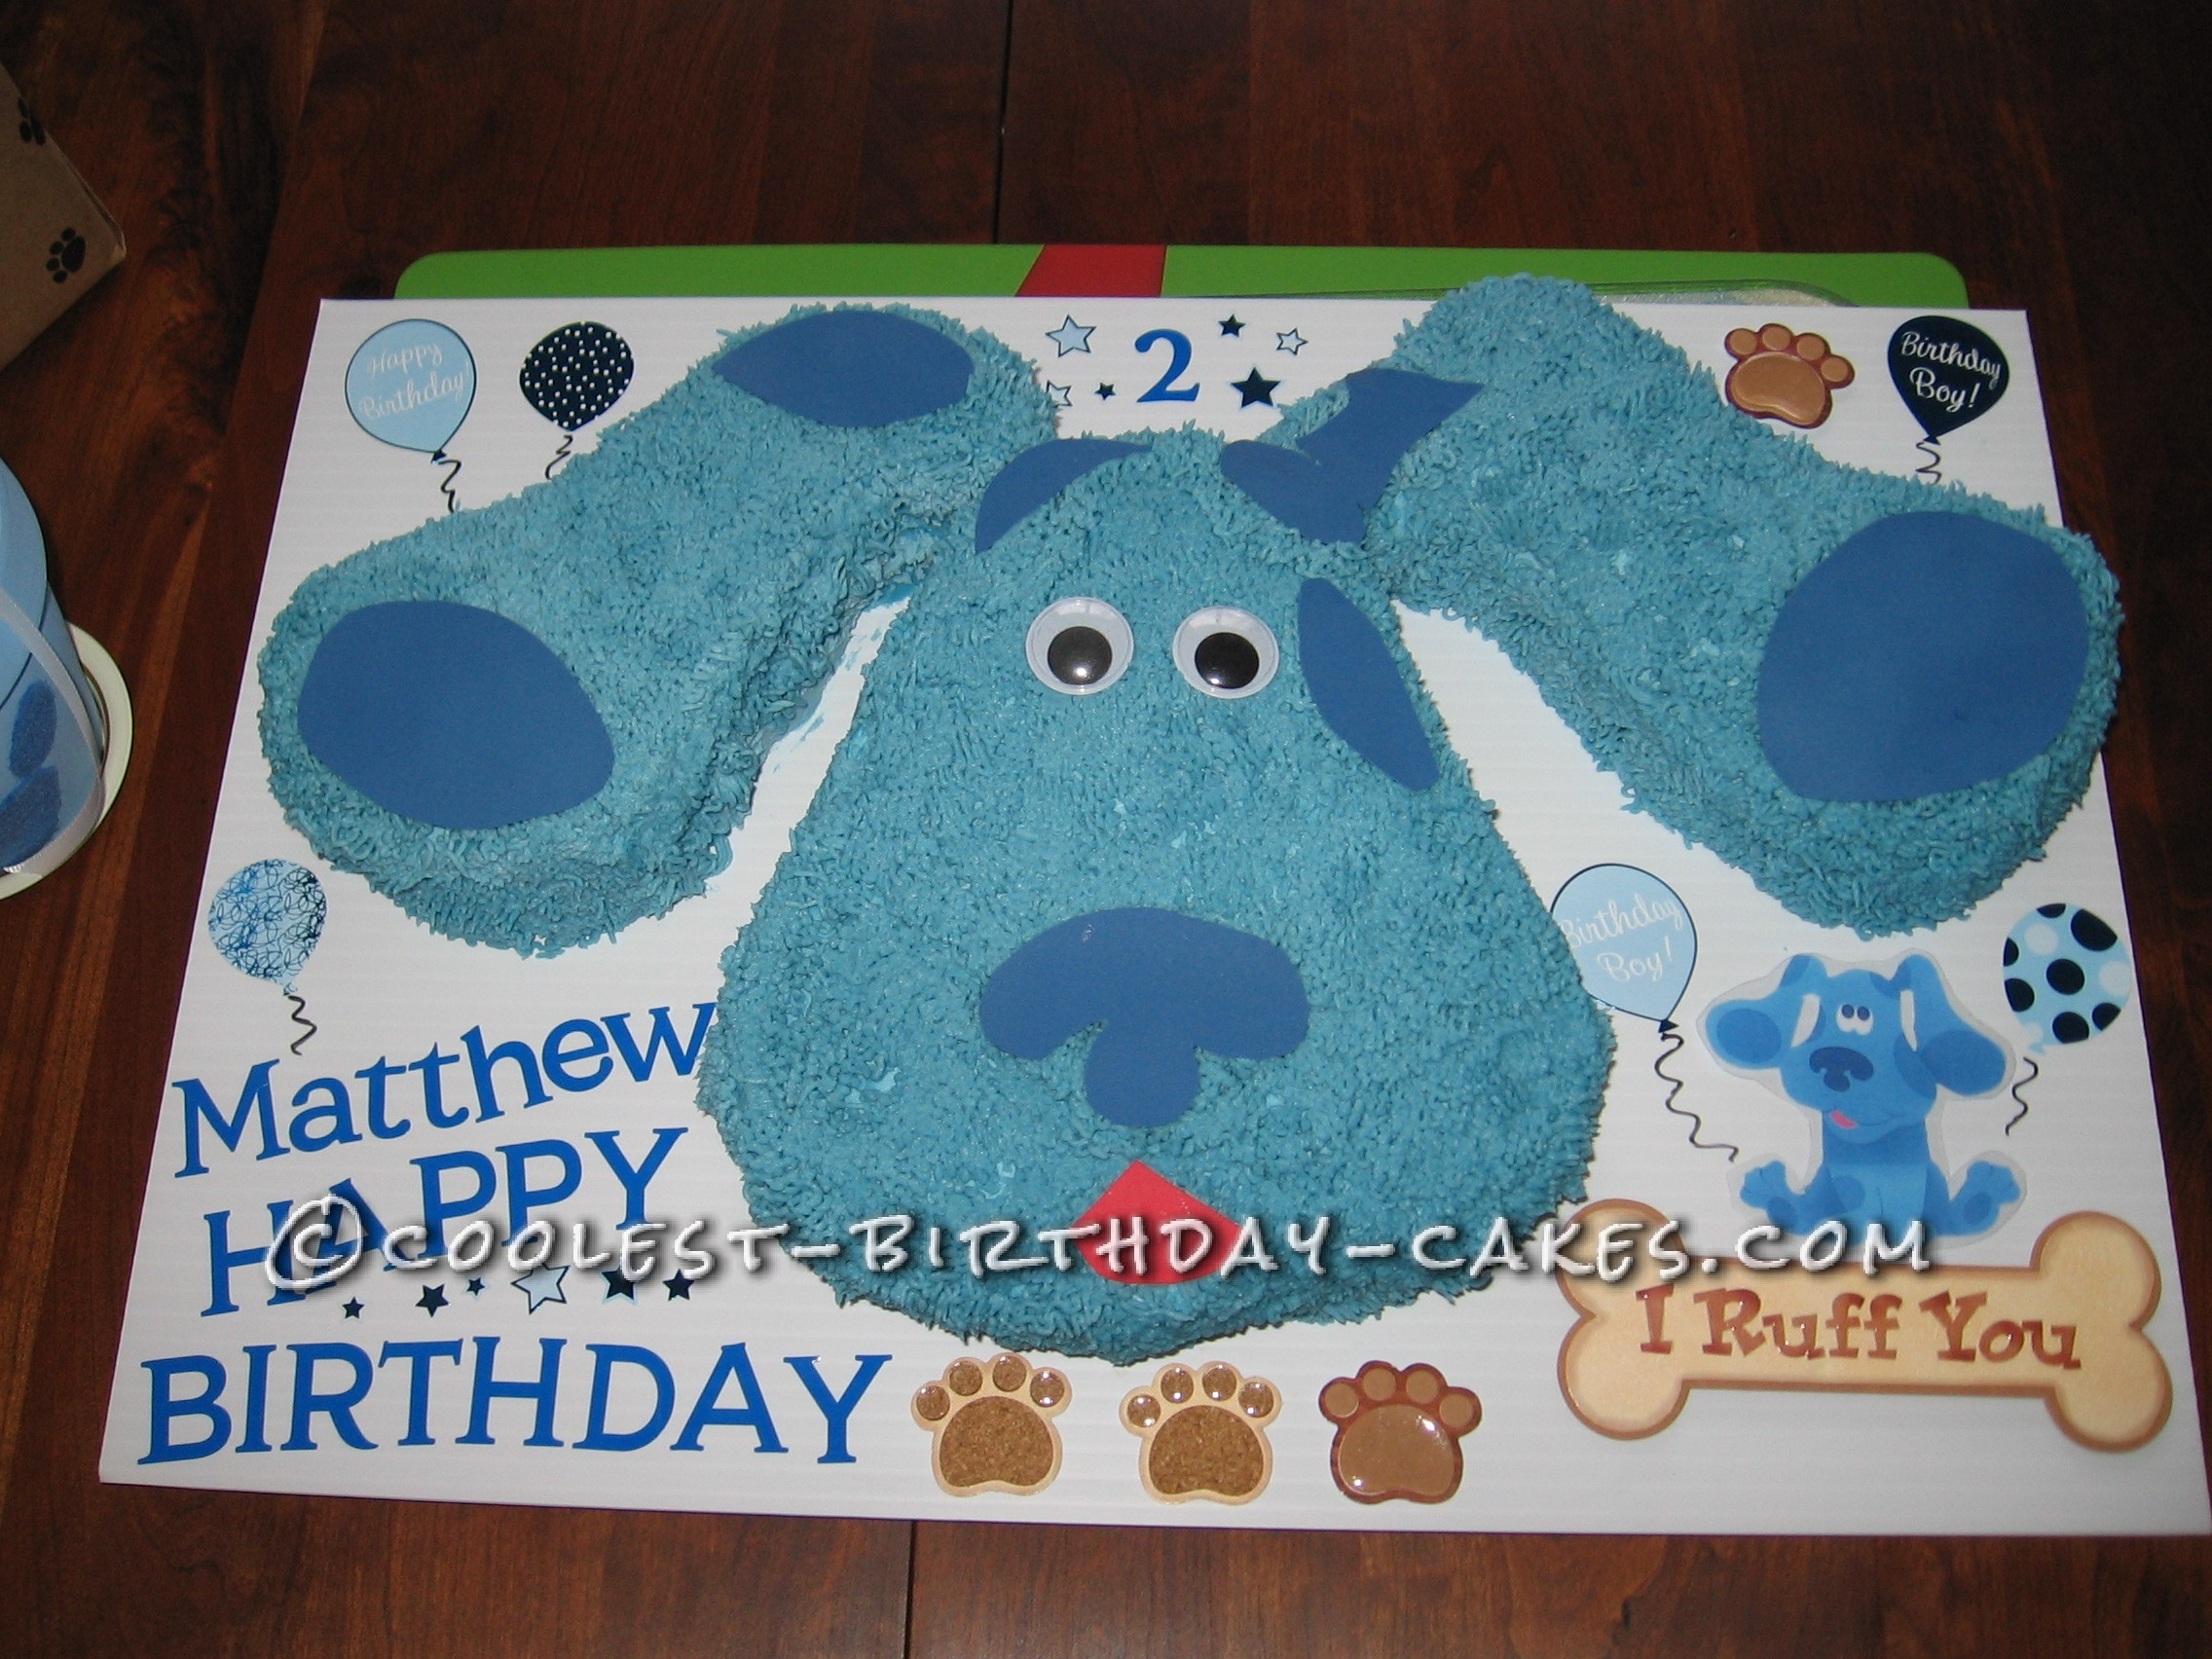 Coolest Blue's Clues Birthday Cake